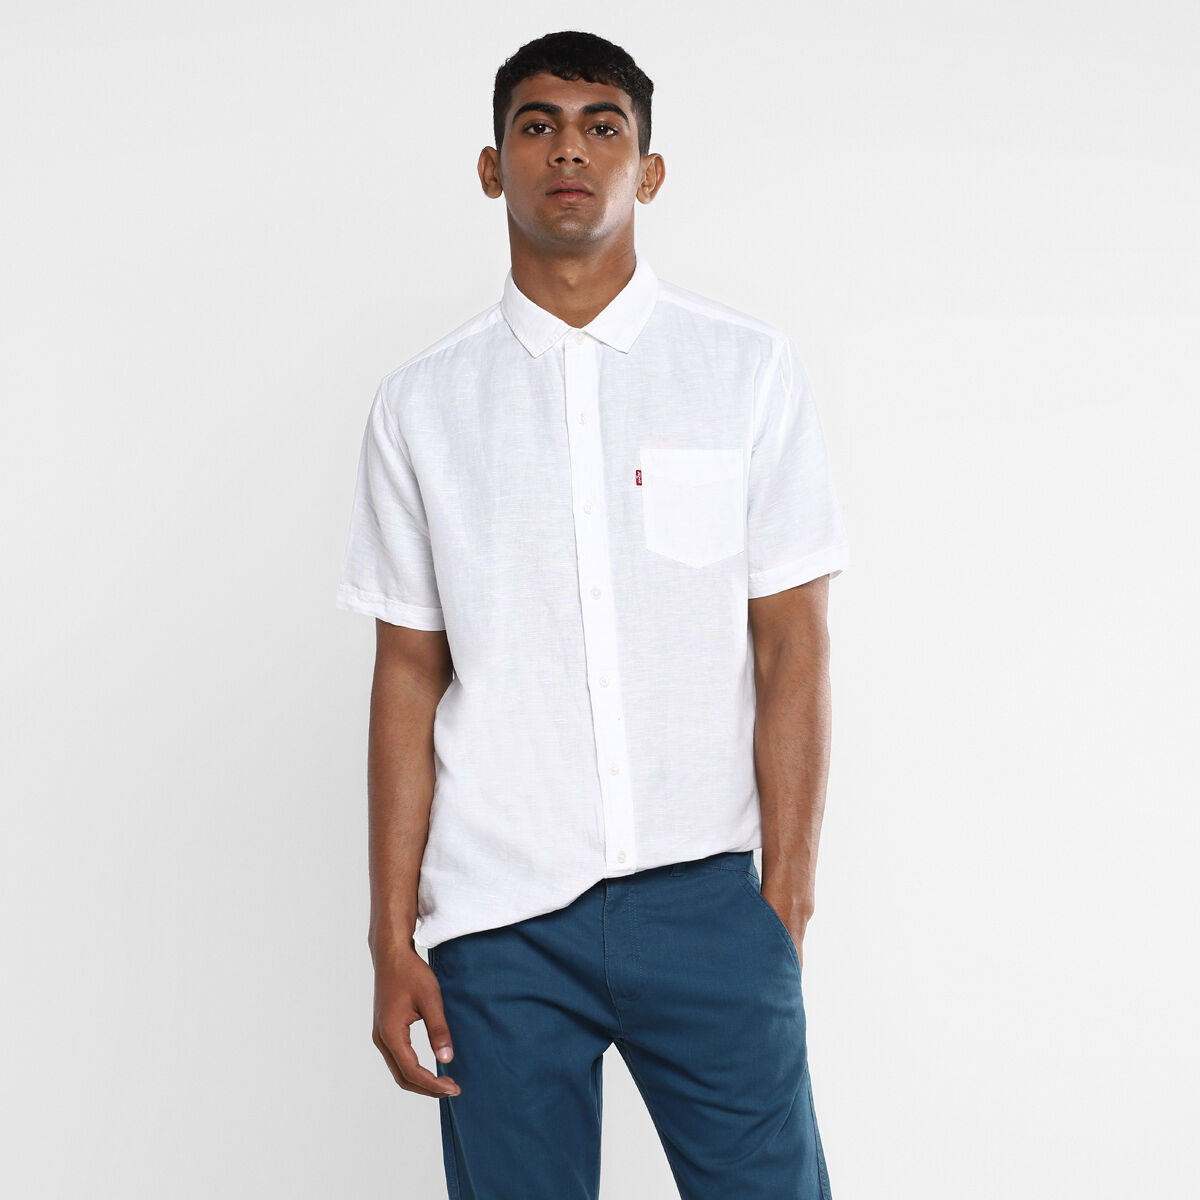 levis india official site